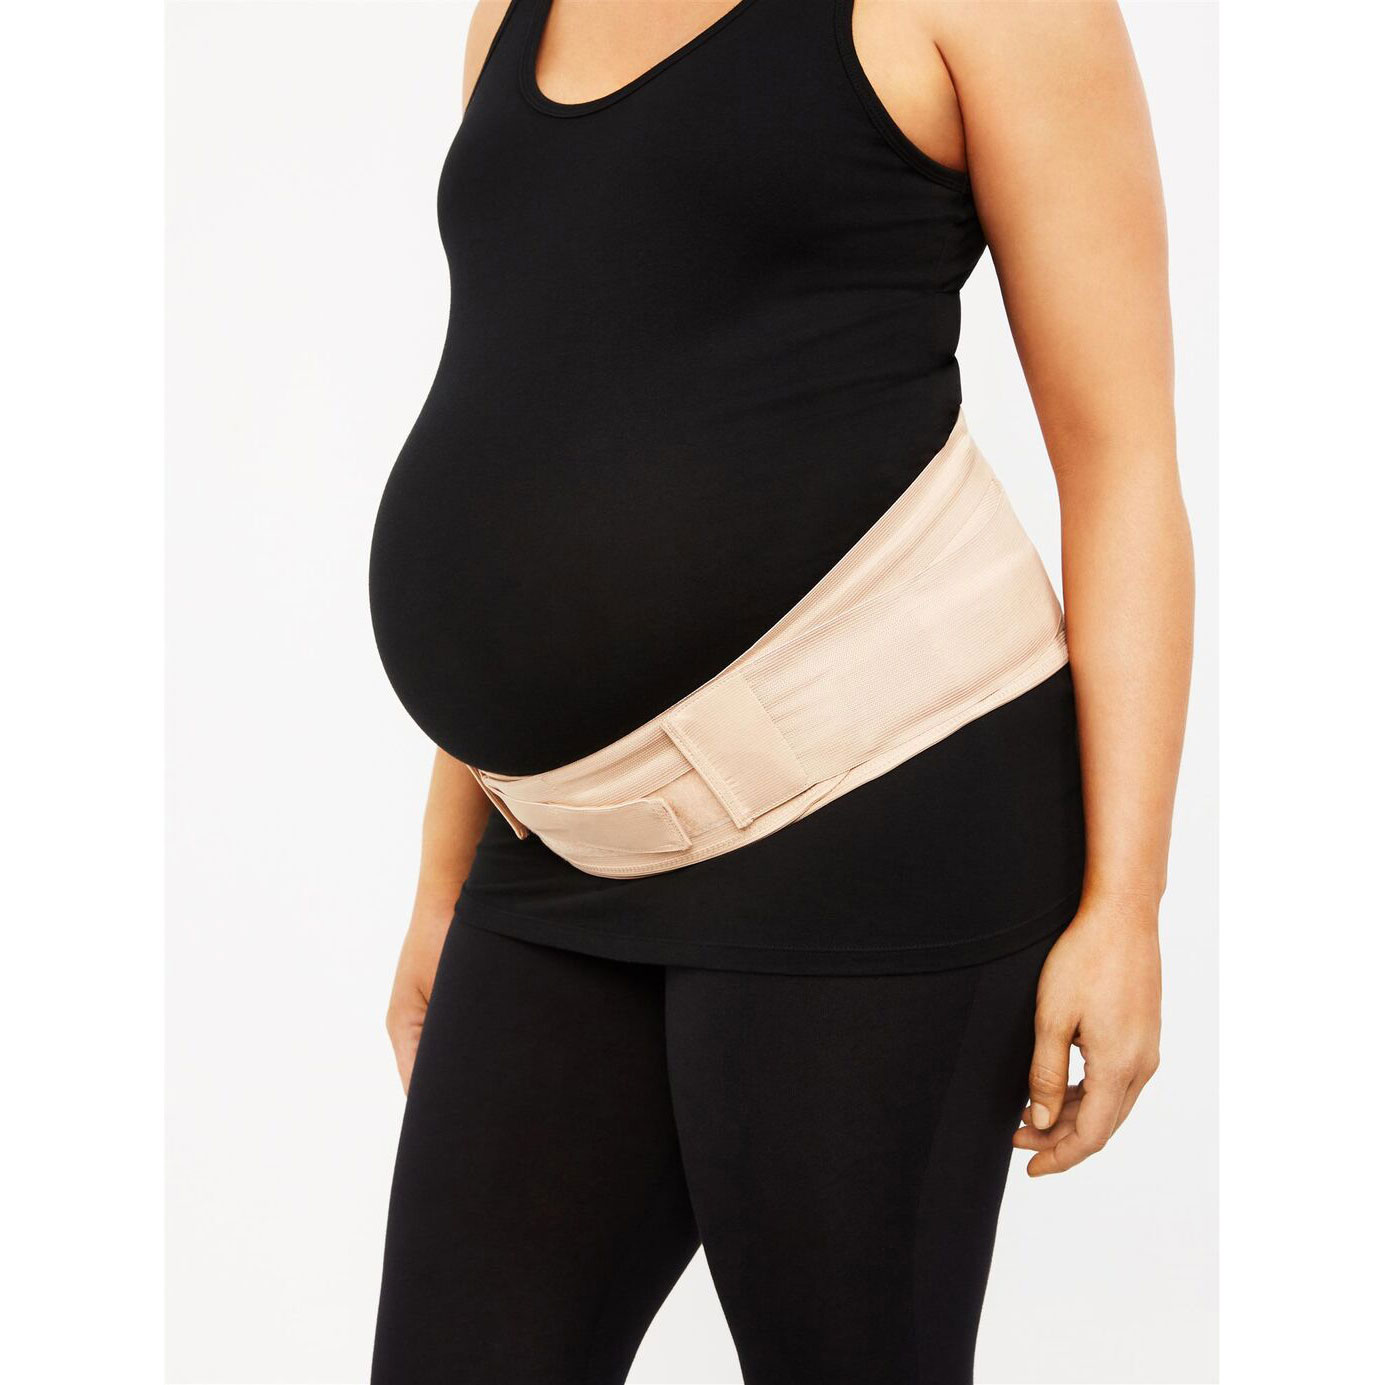 Plus Size The Ultimate Maternity Belt